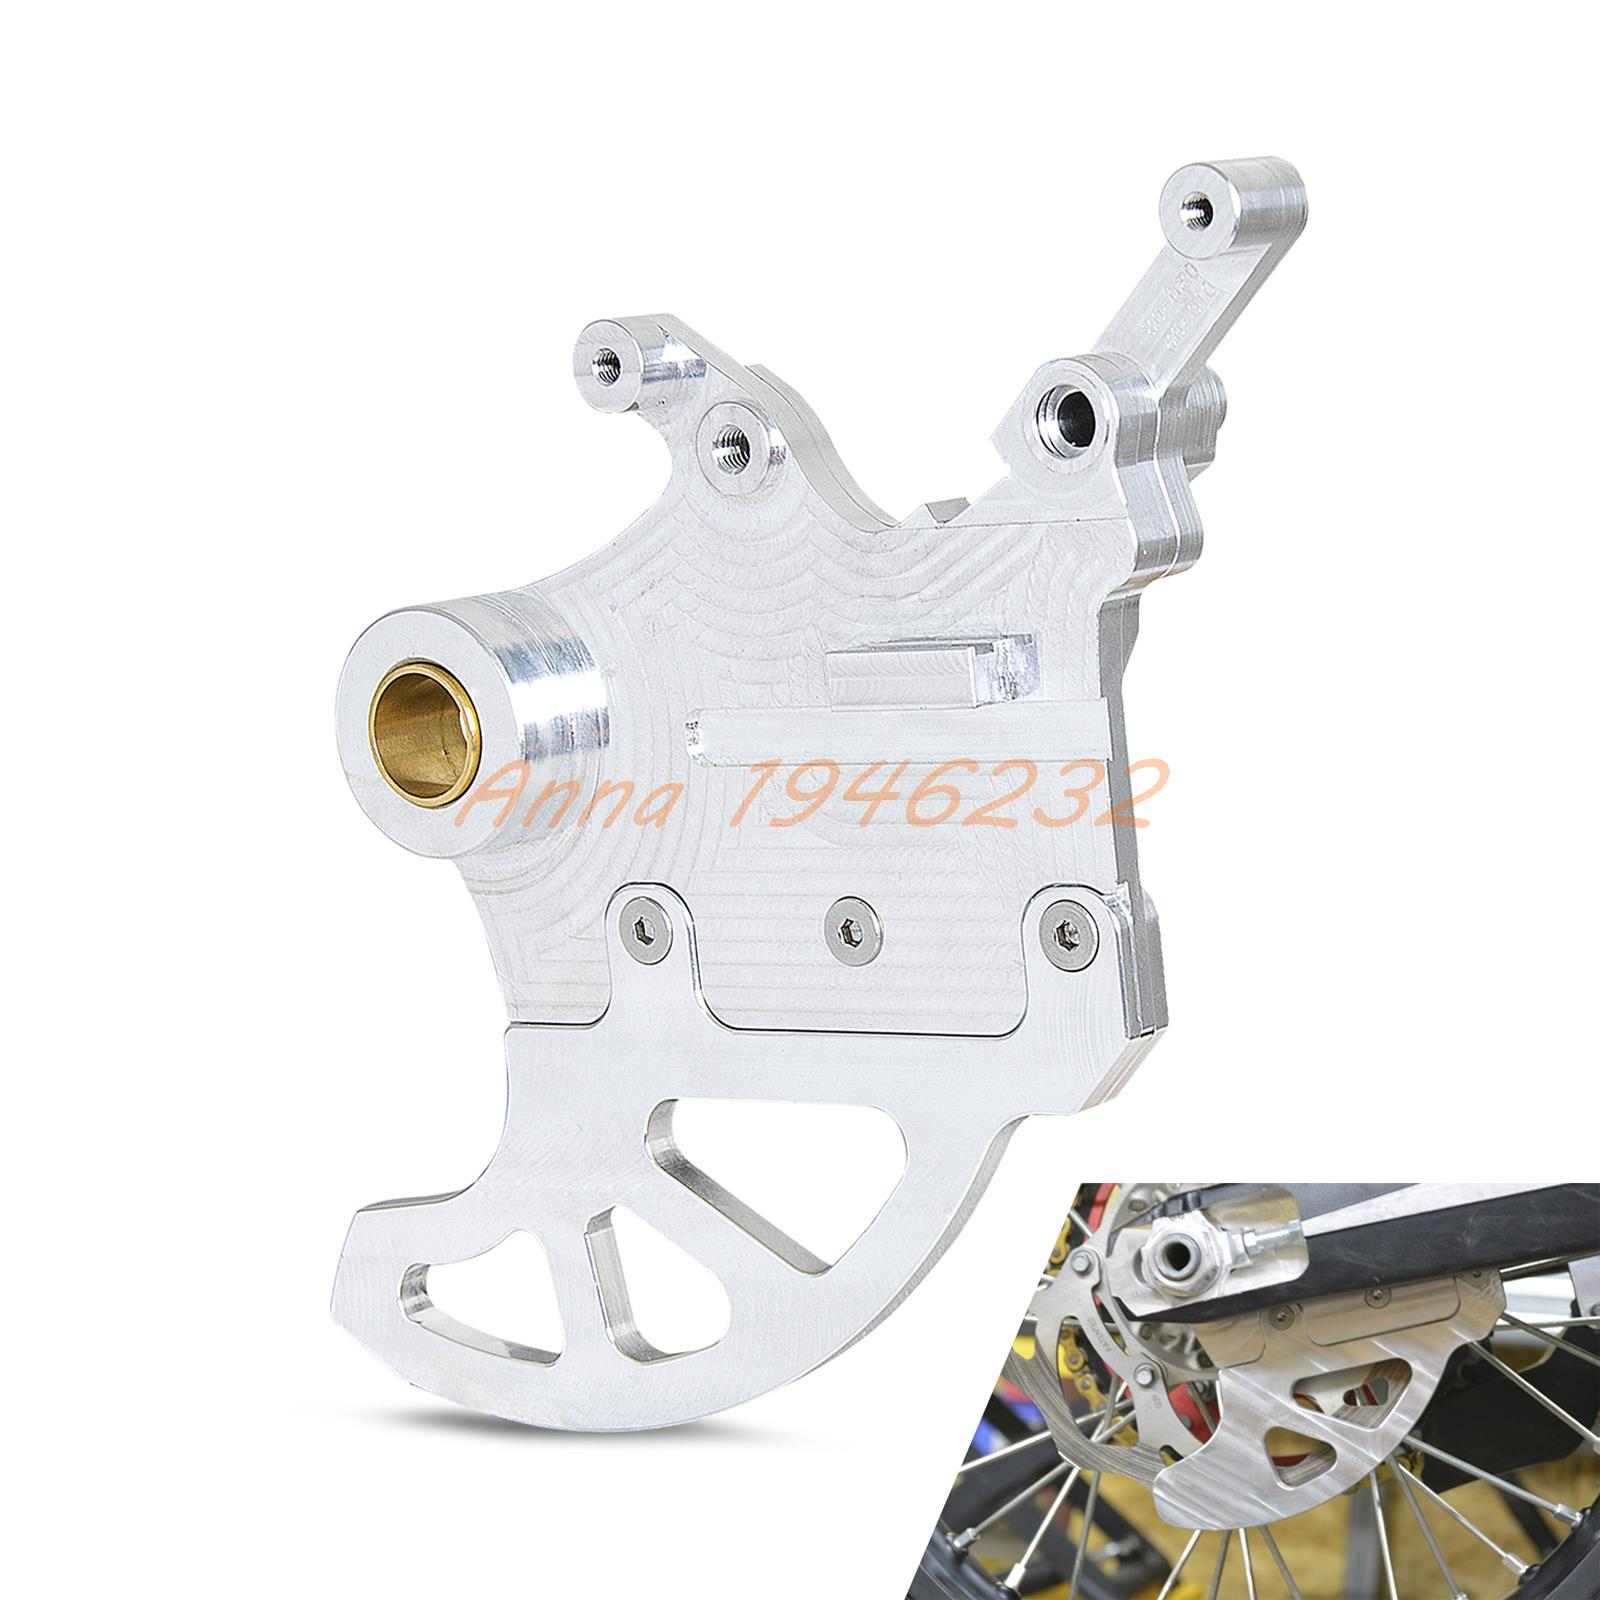 Brake Disc Guard Protector For Yamaha YZ125 250 WR250 WR450 YZ250F YZ450F 2009-2018 YZ250X YZ450X YZ250FX YZ450FX 2015-2018 motorcycle x brake front brake disc cover for yamaha yz250f yz450f 2007 2013 blue